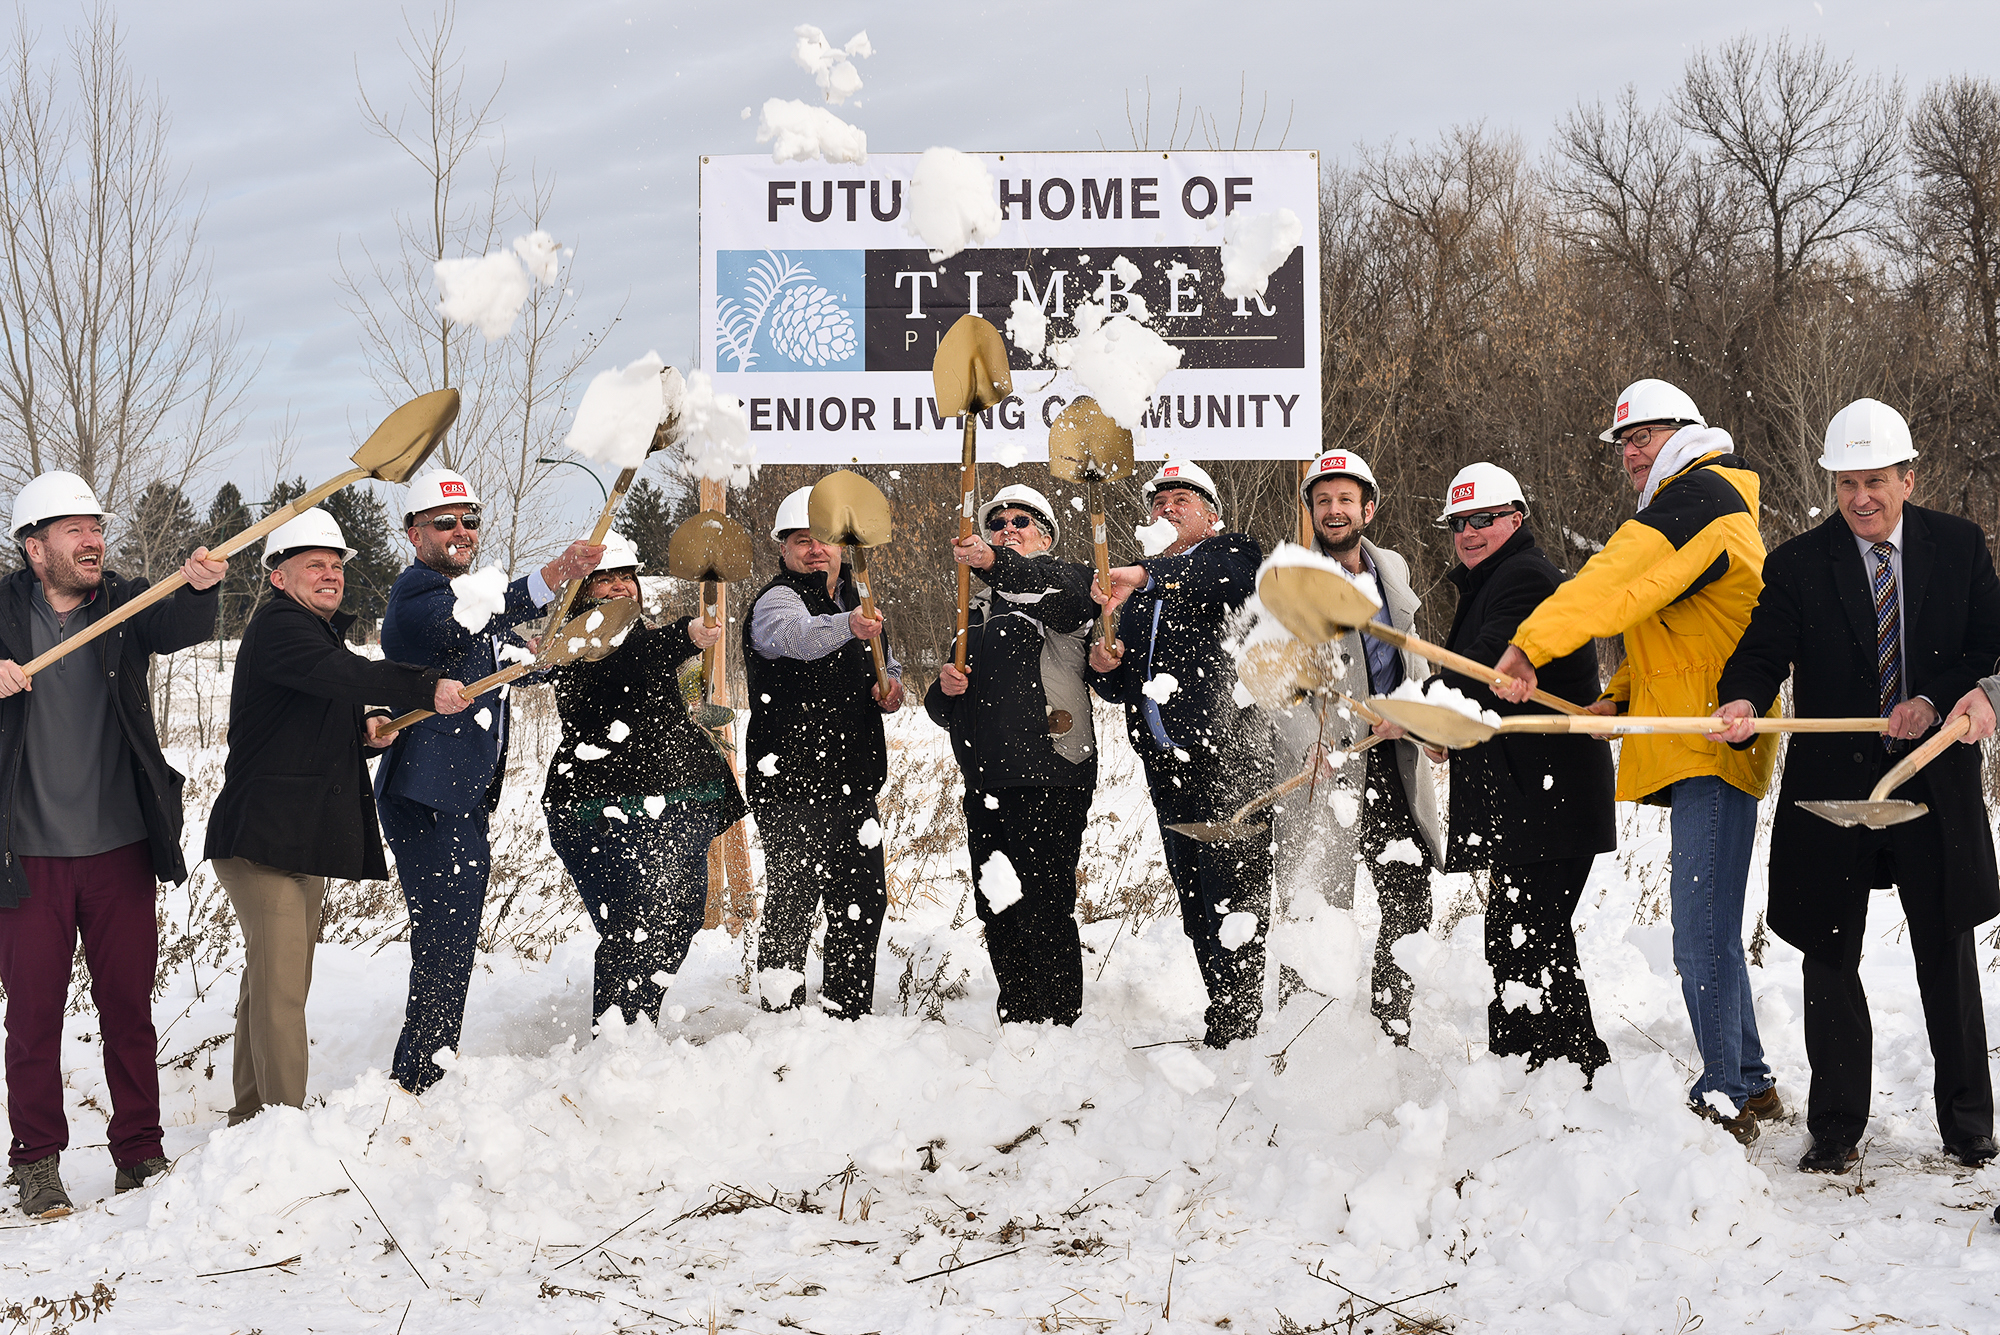 Timber Pines senior community broke ground